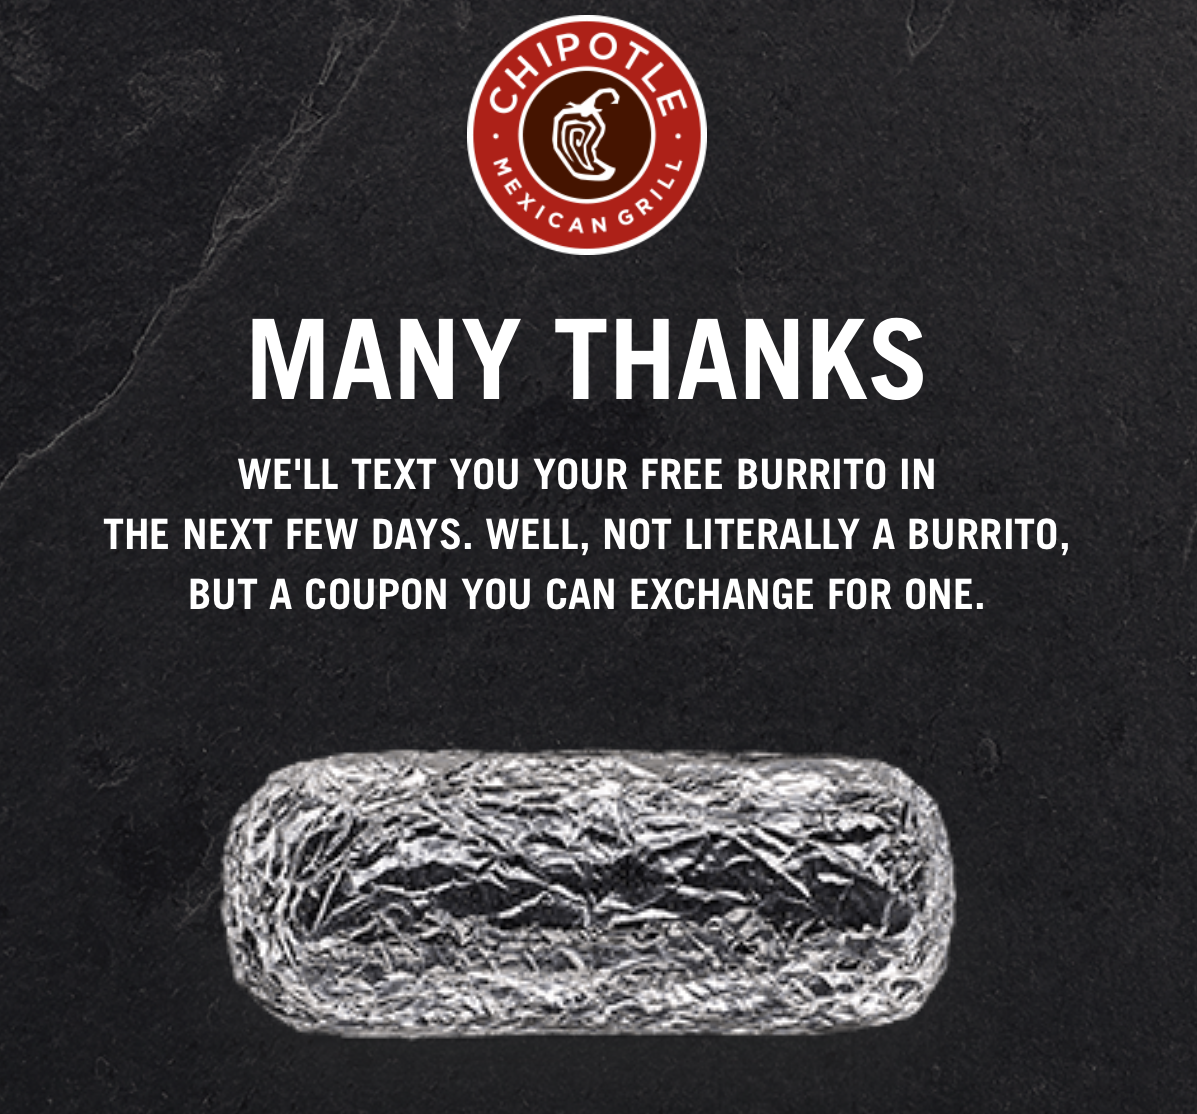 Chipotle's Closed Today, But You Can Get A 'Raincheck' Free Burrito… Or A Deal From Competitors